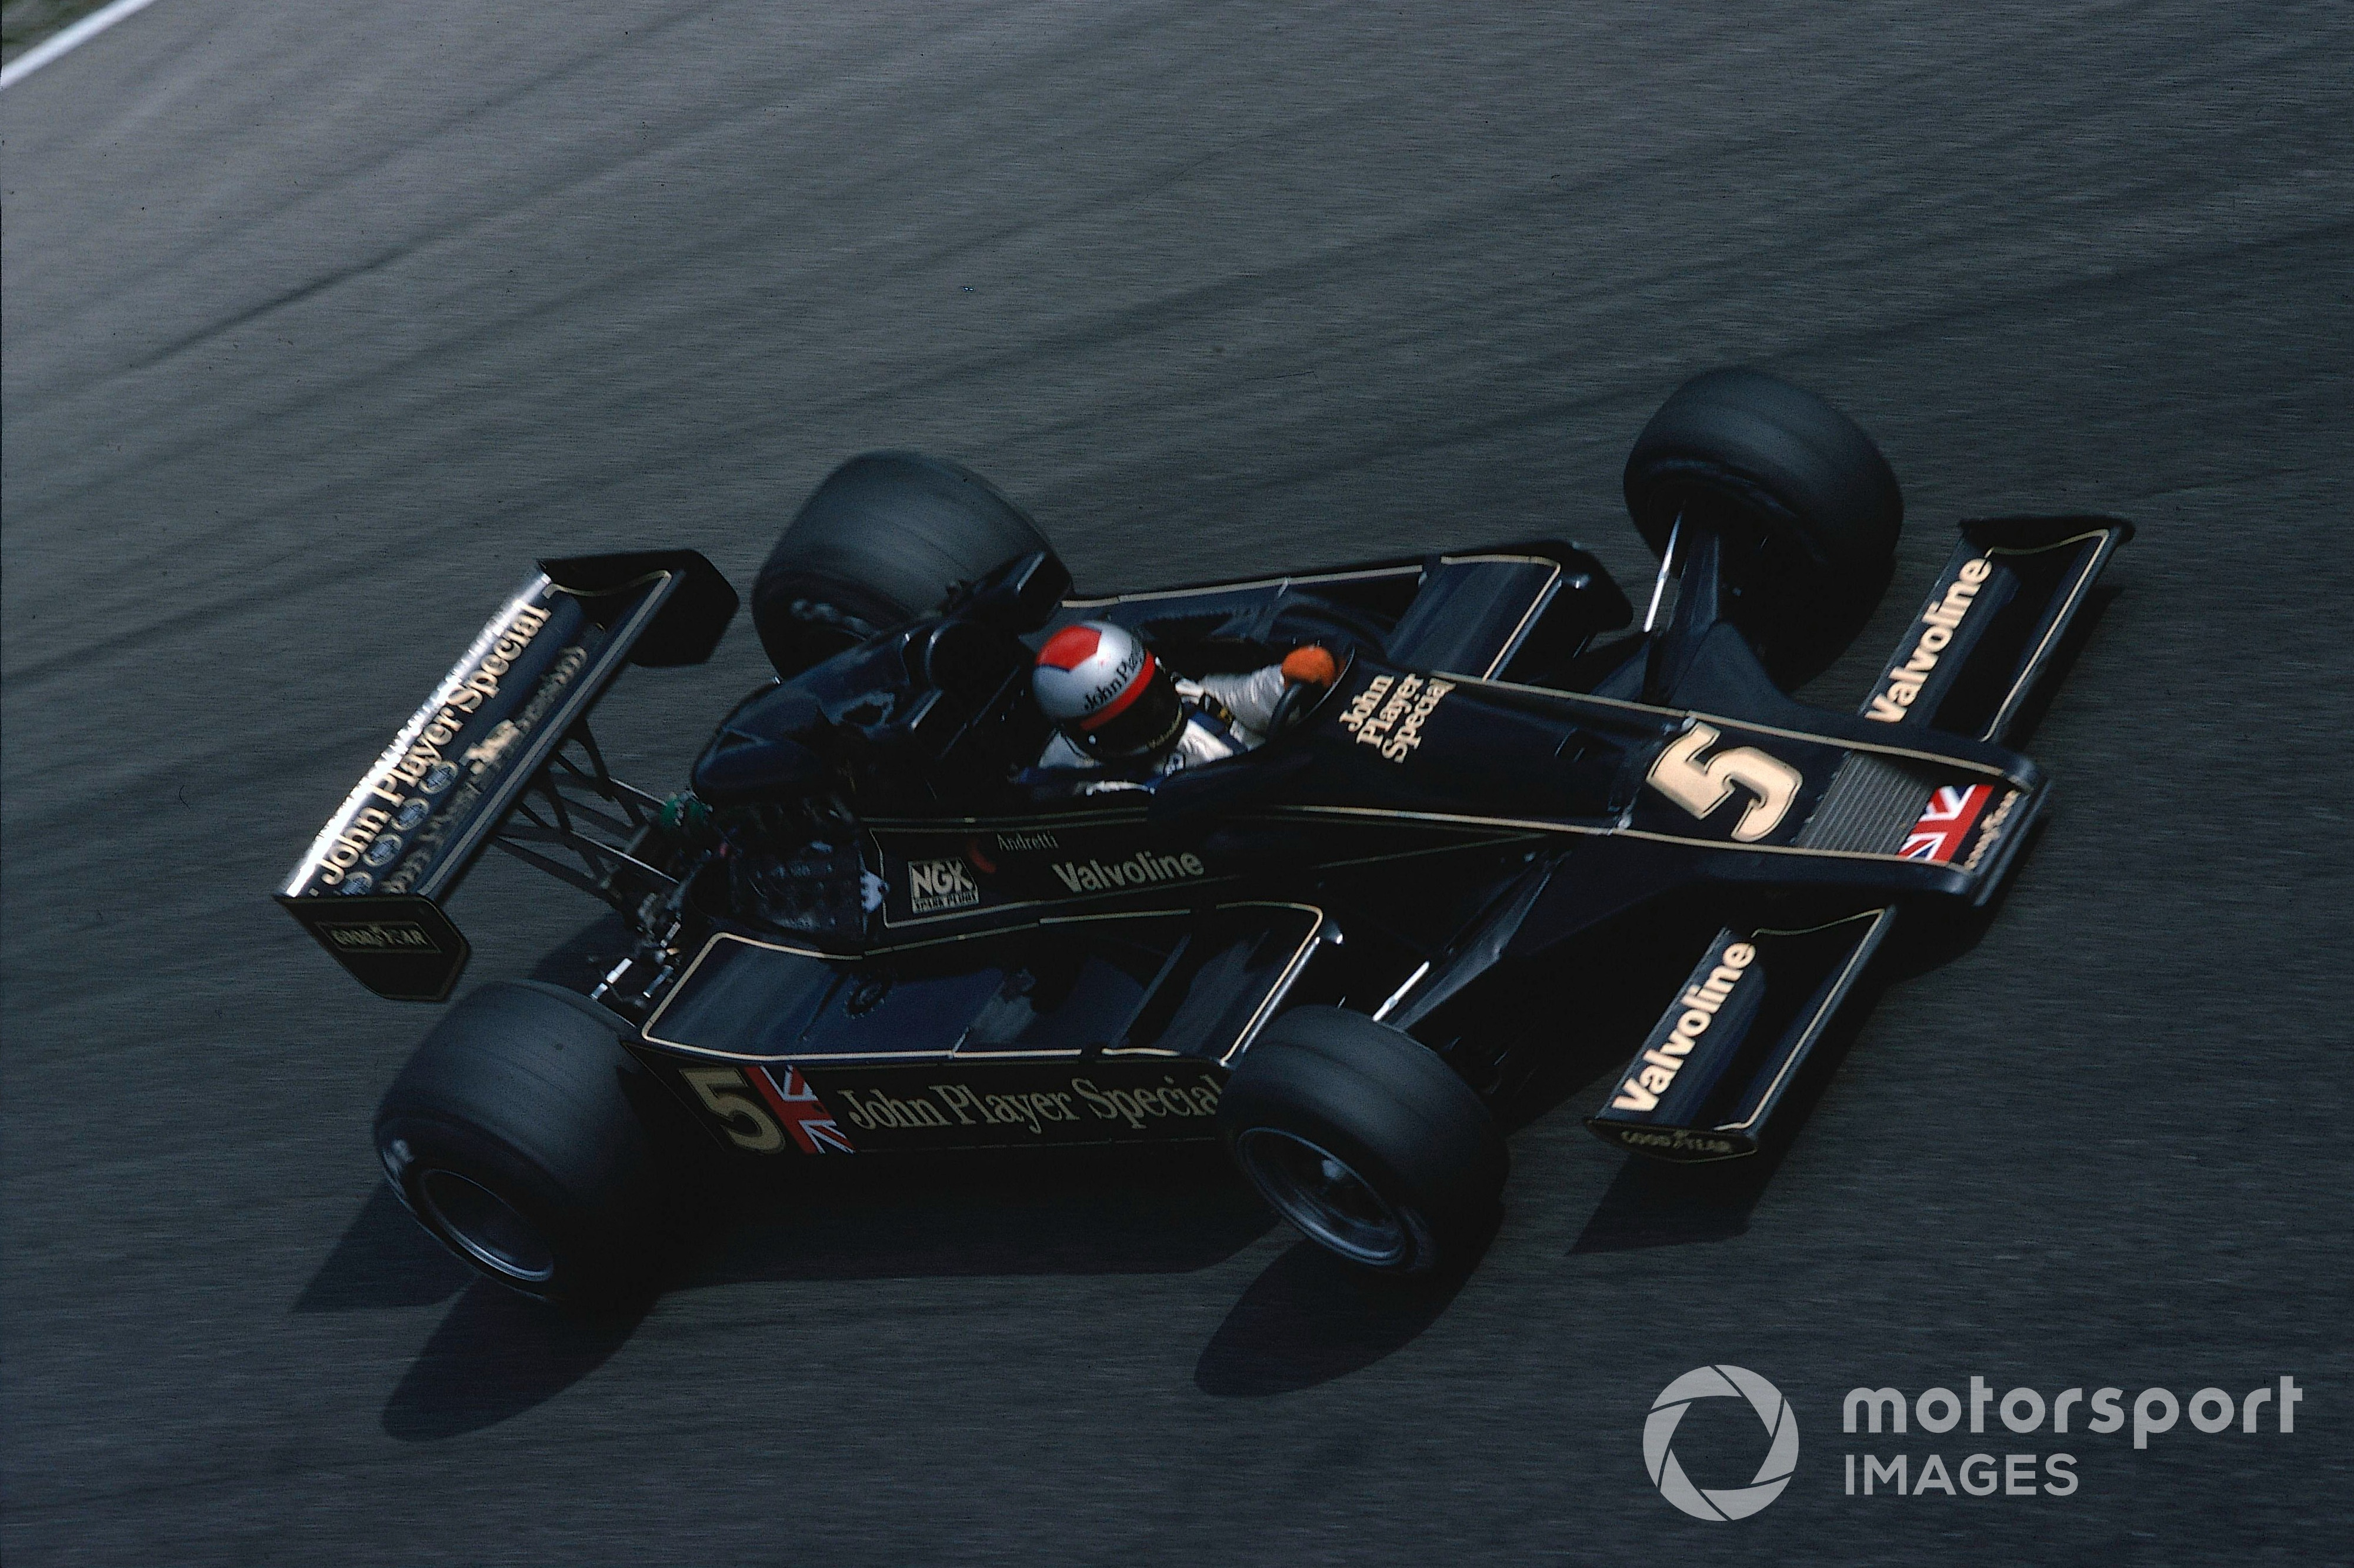 Mario Andretti in the Lotus-Ford 78 while leading the 1977 Italian GP